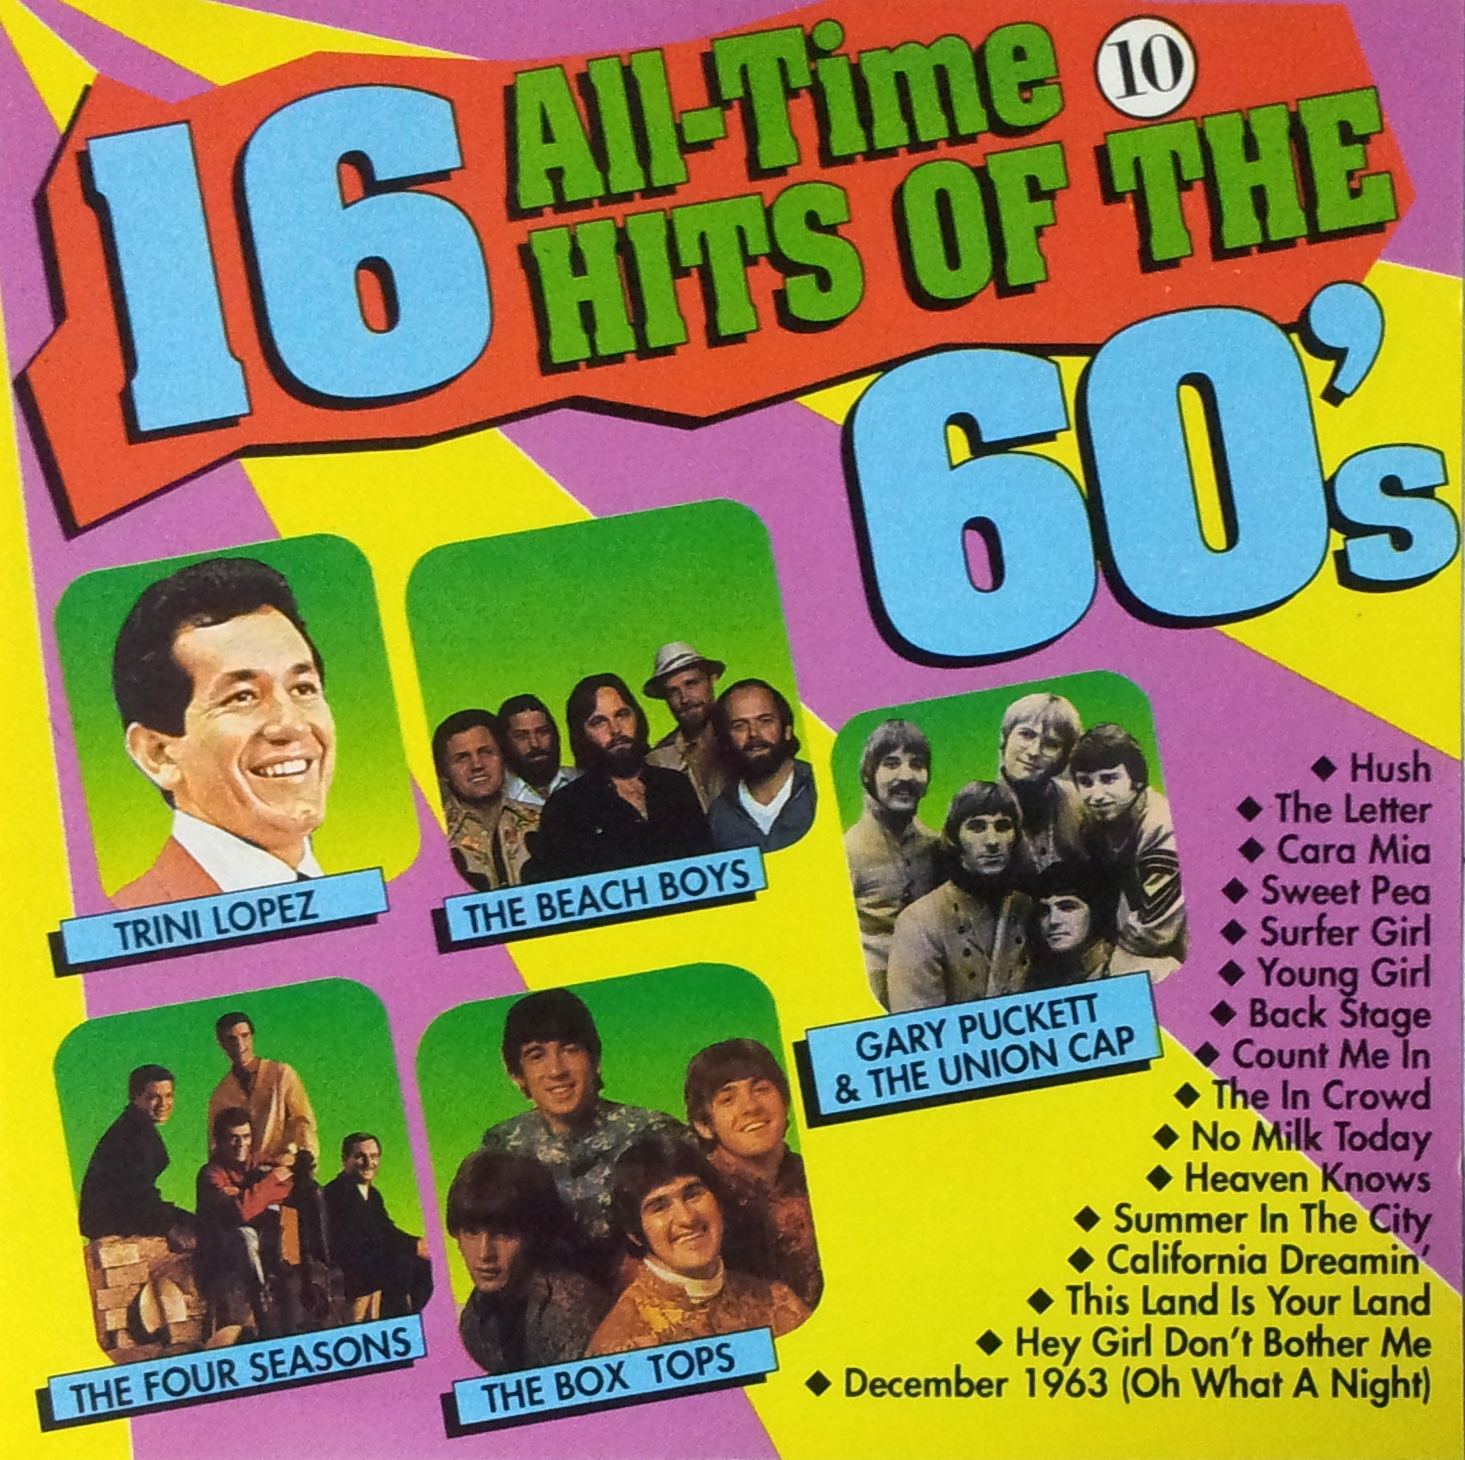 16 All Time hits of the 60's -10